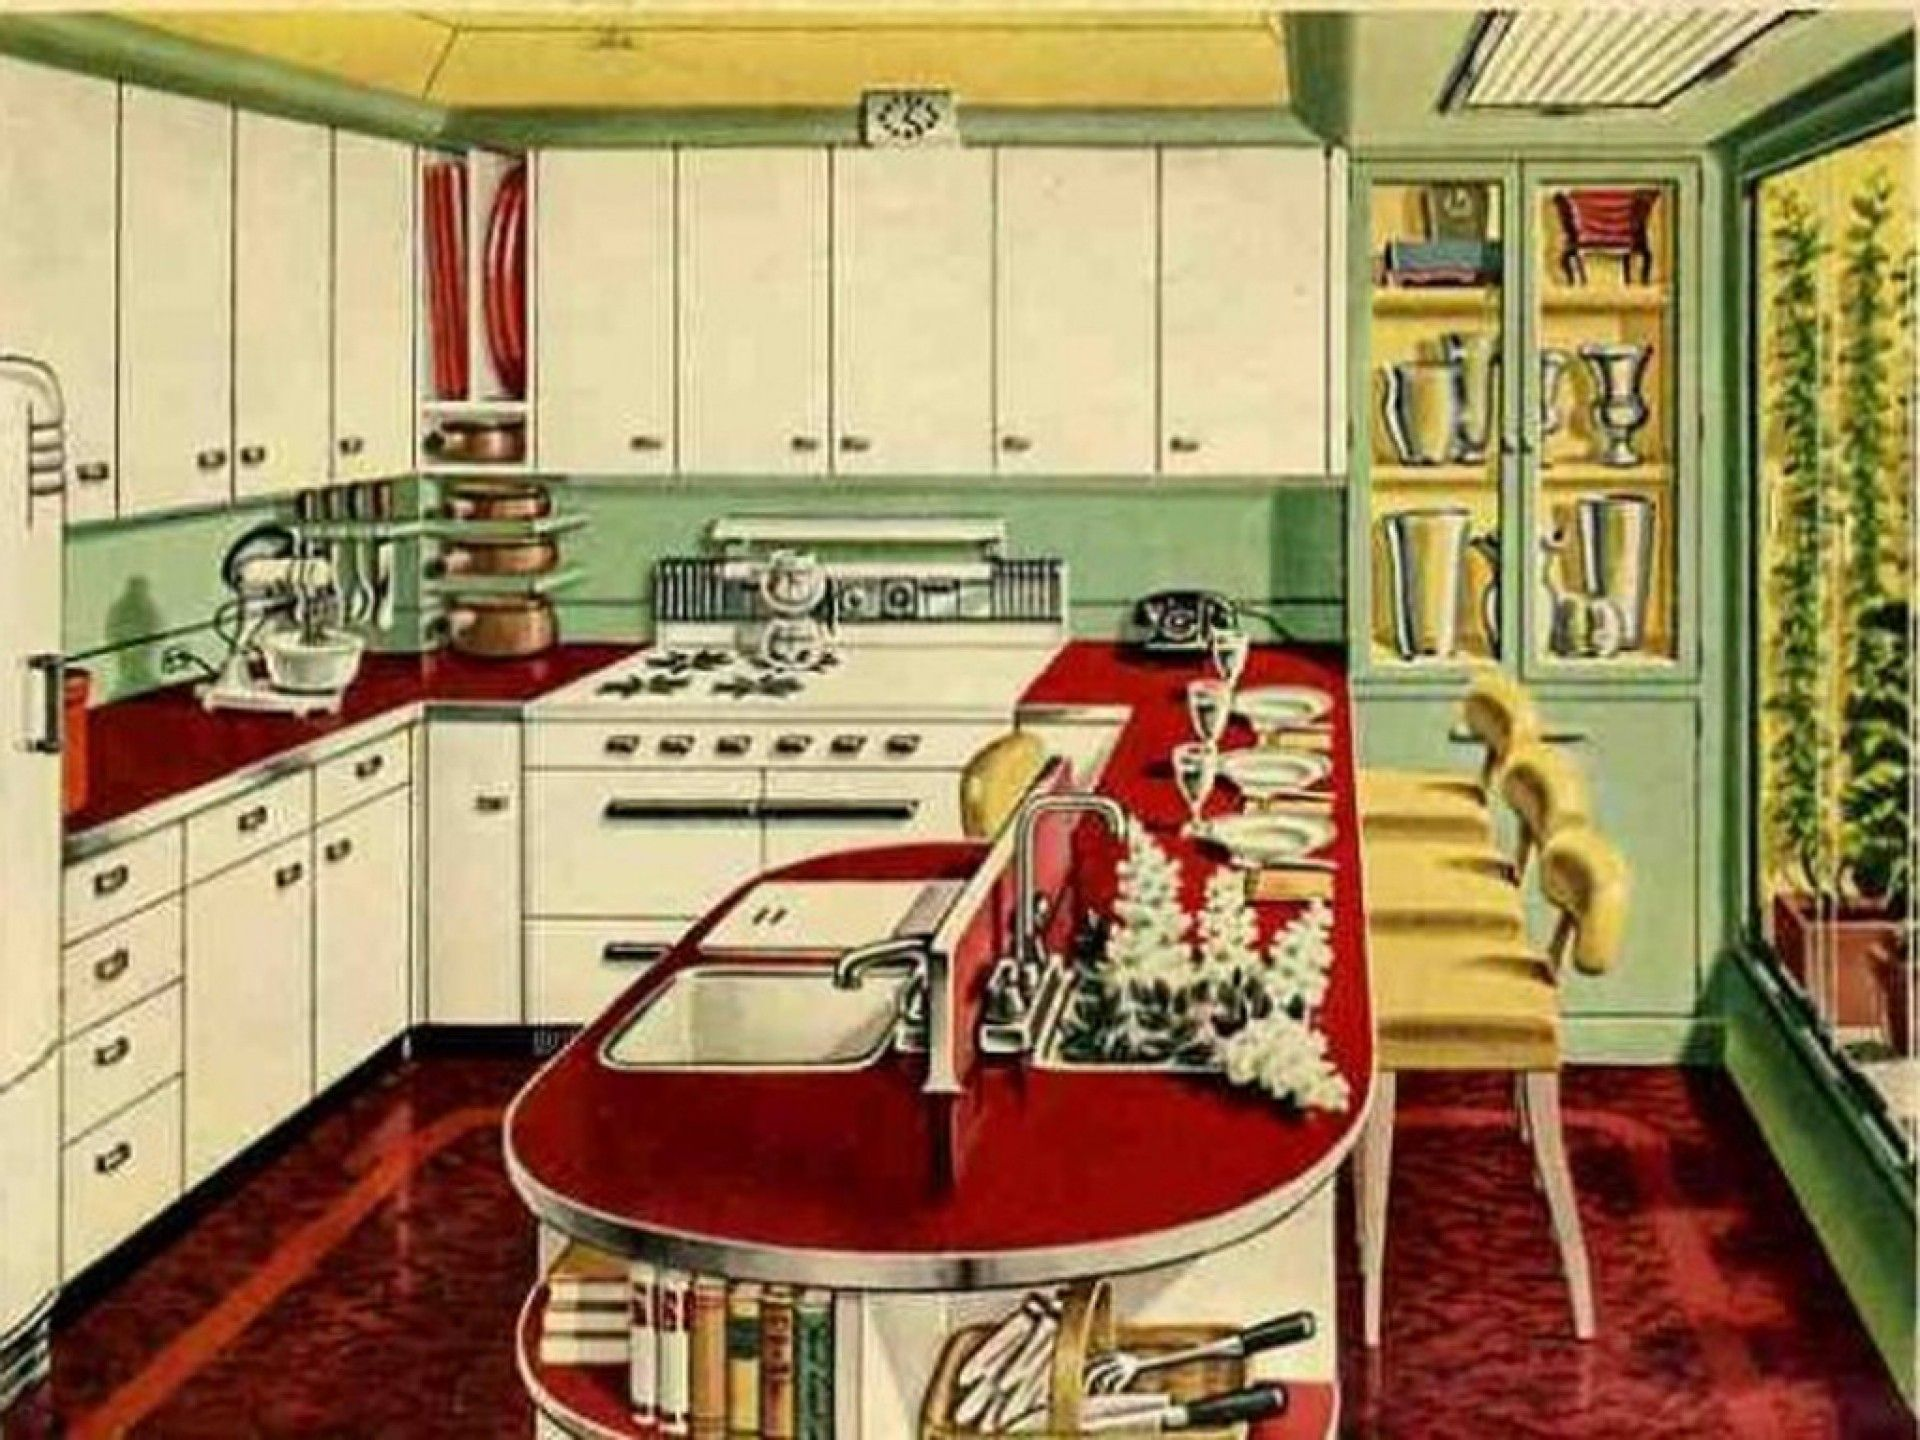 Charming Green And Red Kitchen Ideas Part - 8: Wonderful White Green Red Wood Stainless Glass Cool Design Fantastic Retro Kitchen  Ideas Wall Cabinet Base